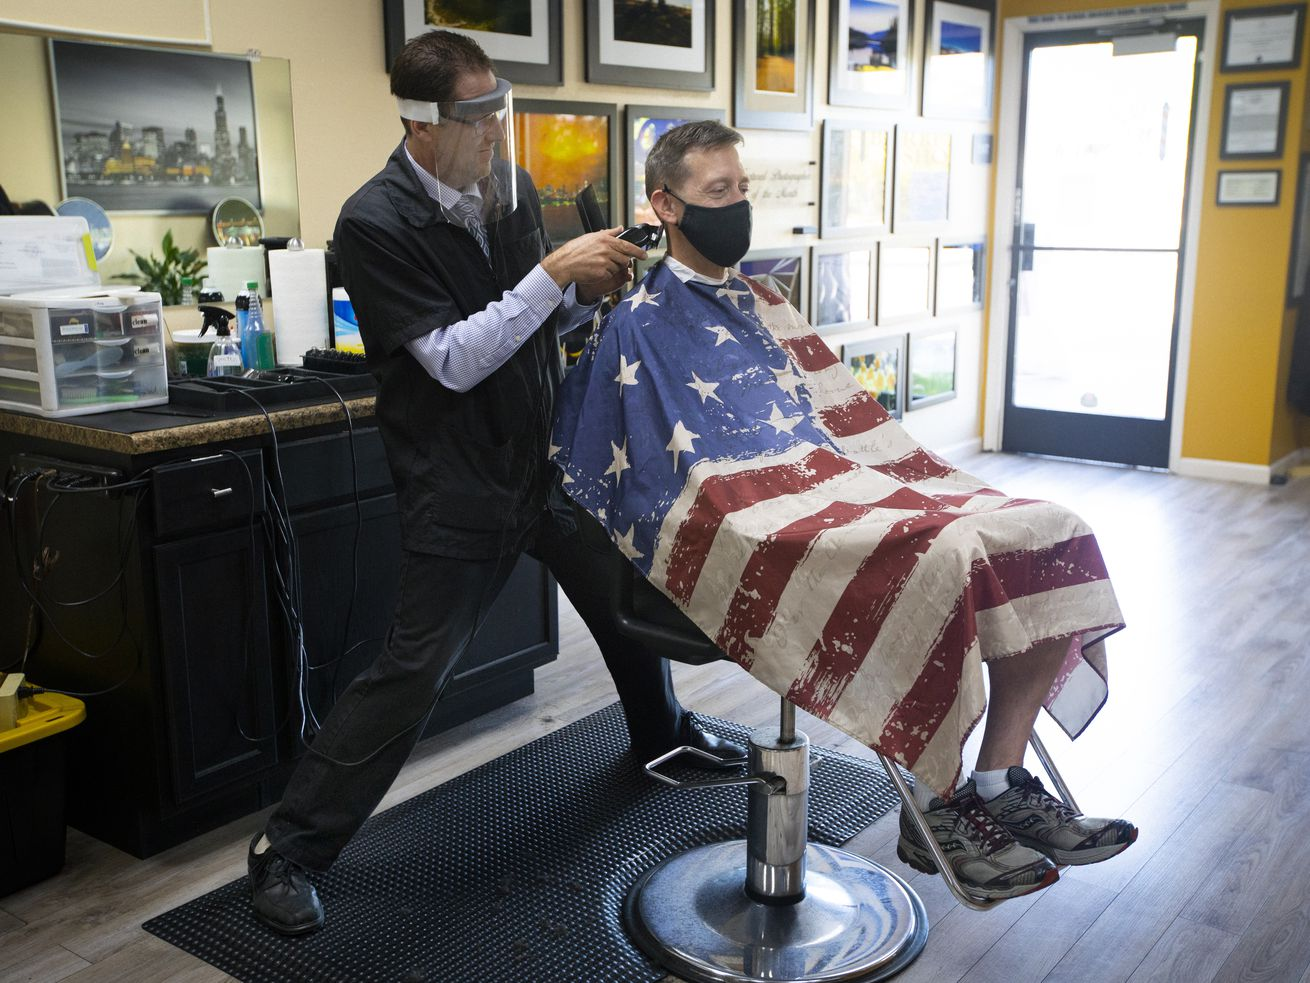 A man covered in a drape patterned like the American flag sits in a barbershop getting his hair cut by a barber.